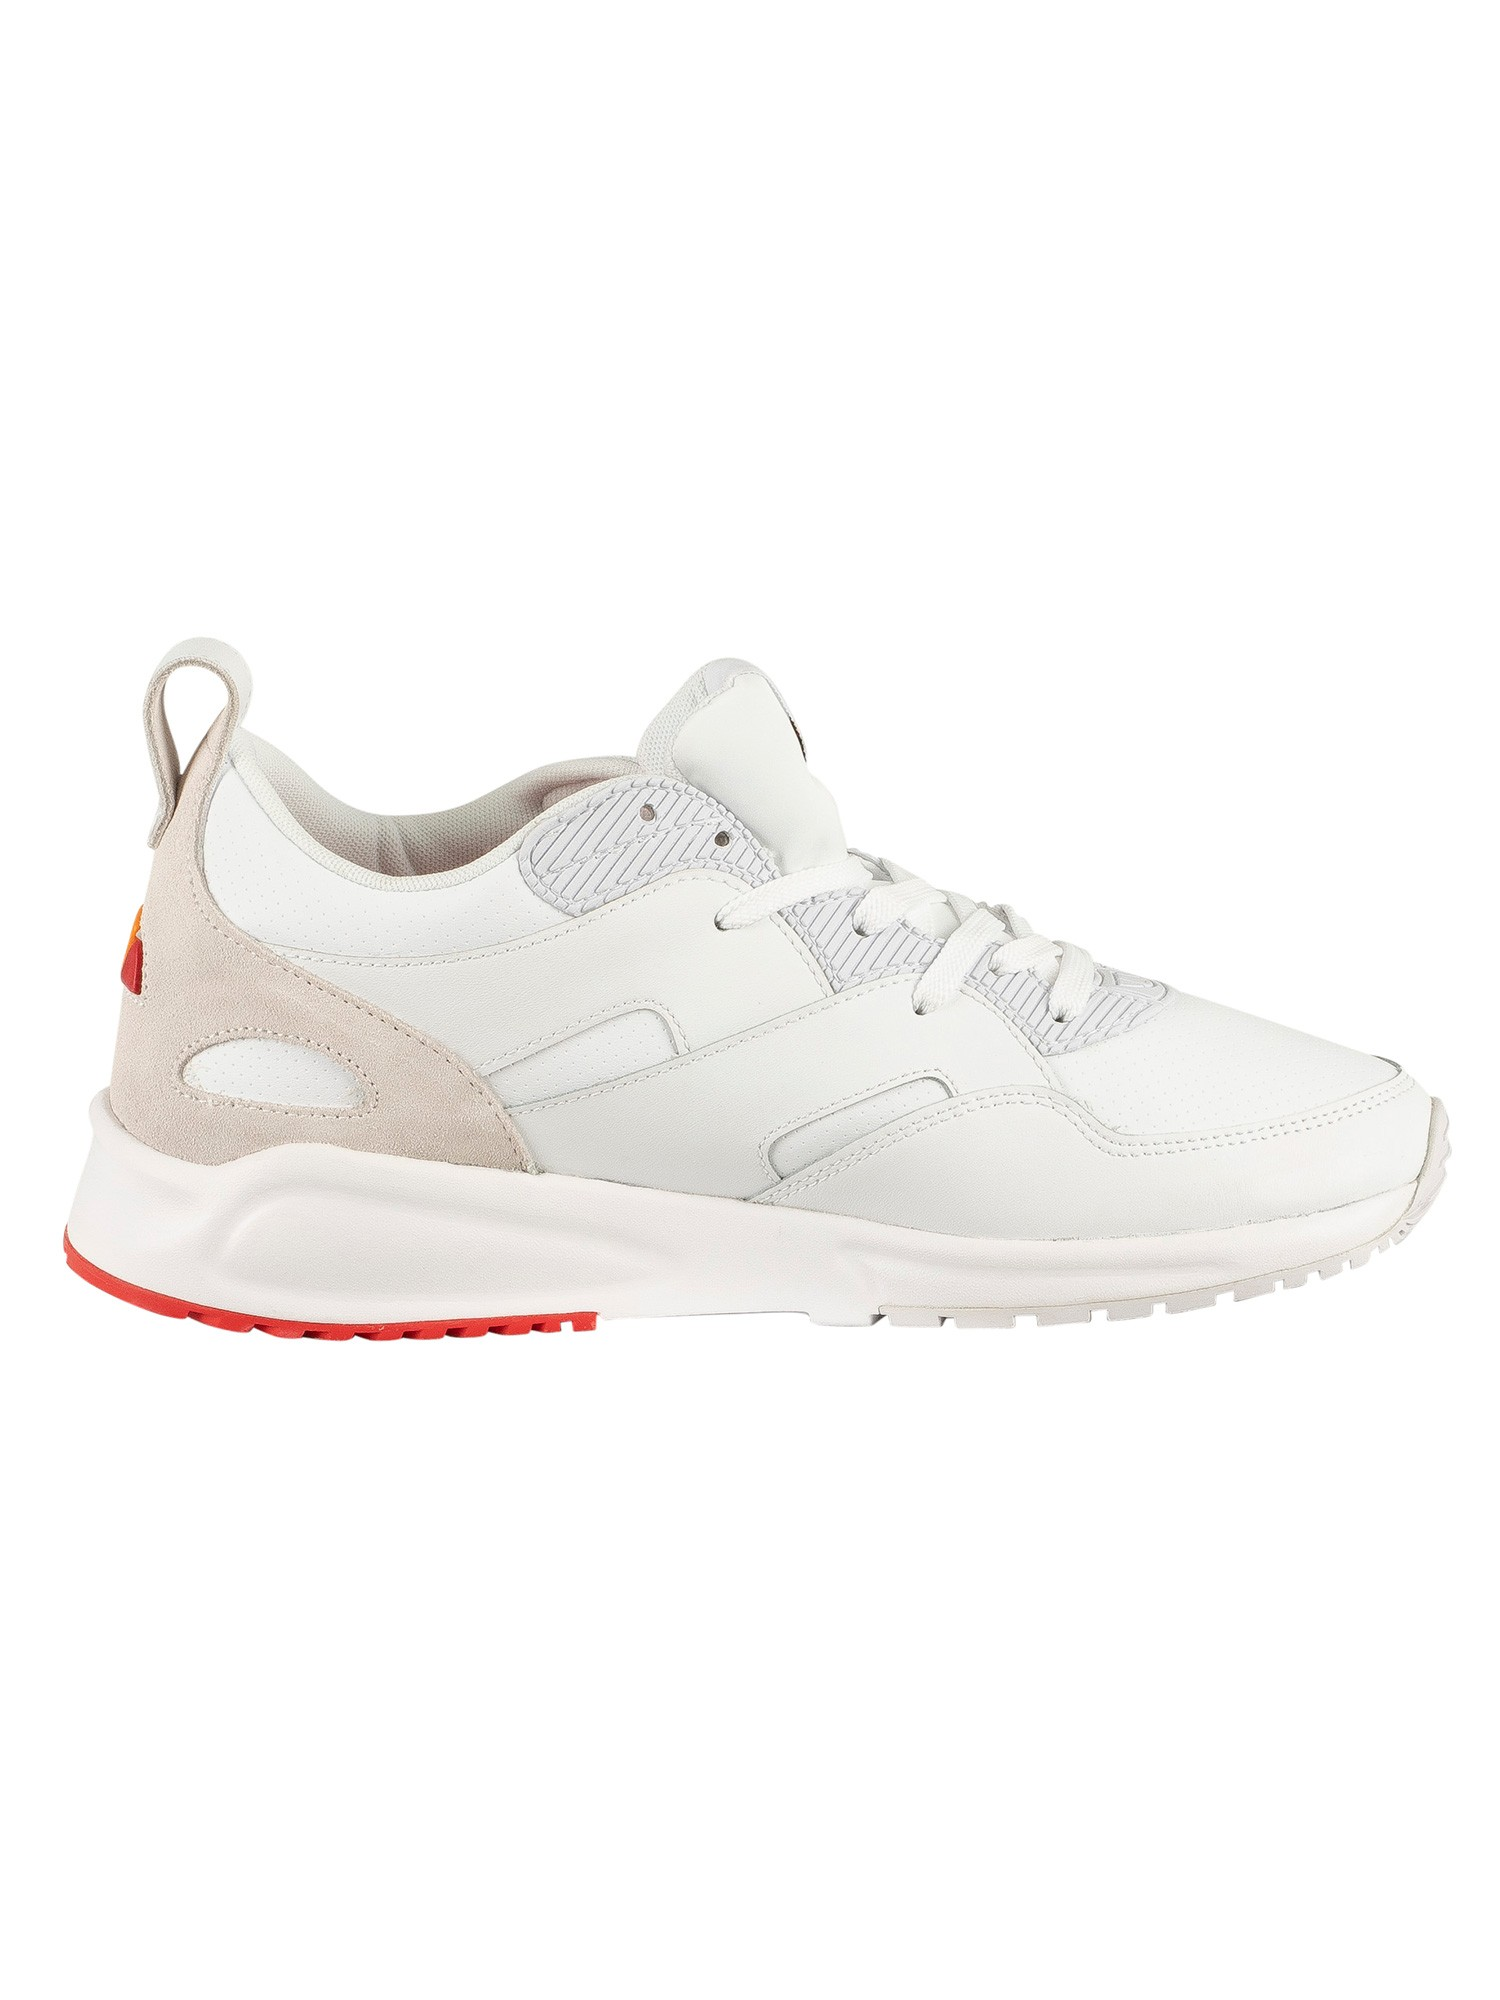 Ellesse Potenza Leather Trainers - White